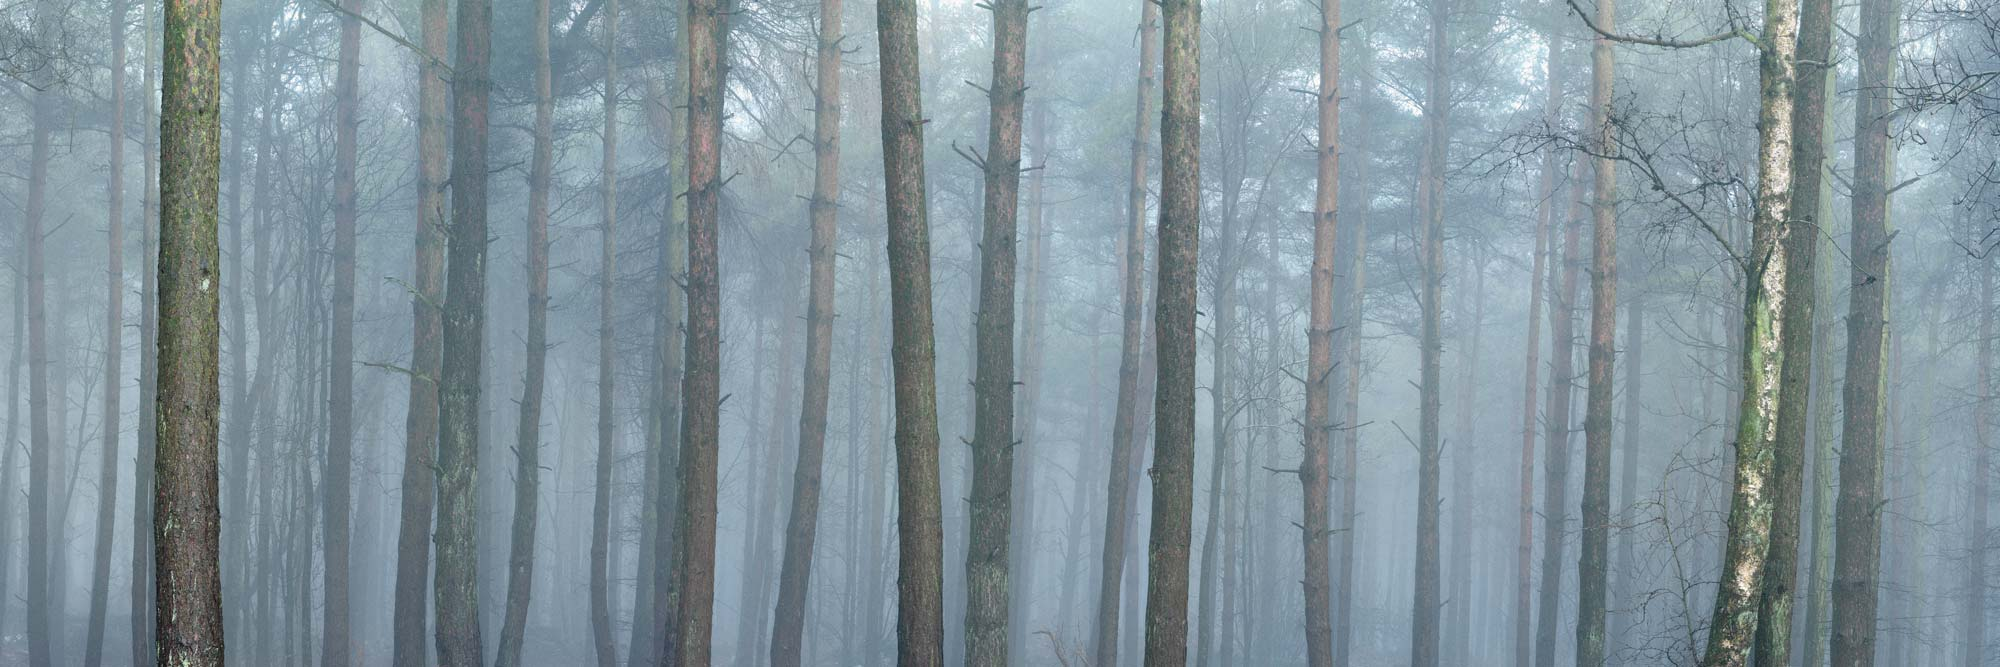 Forest in winter with mist